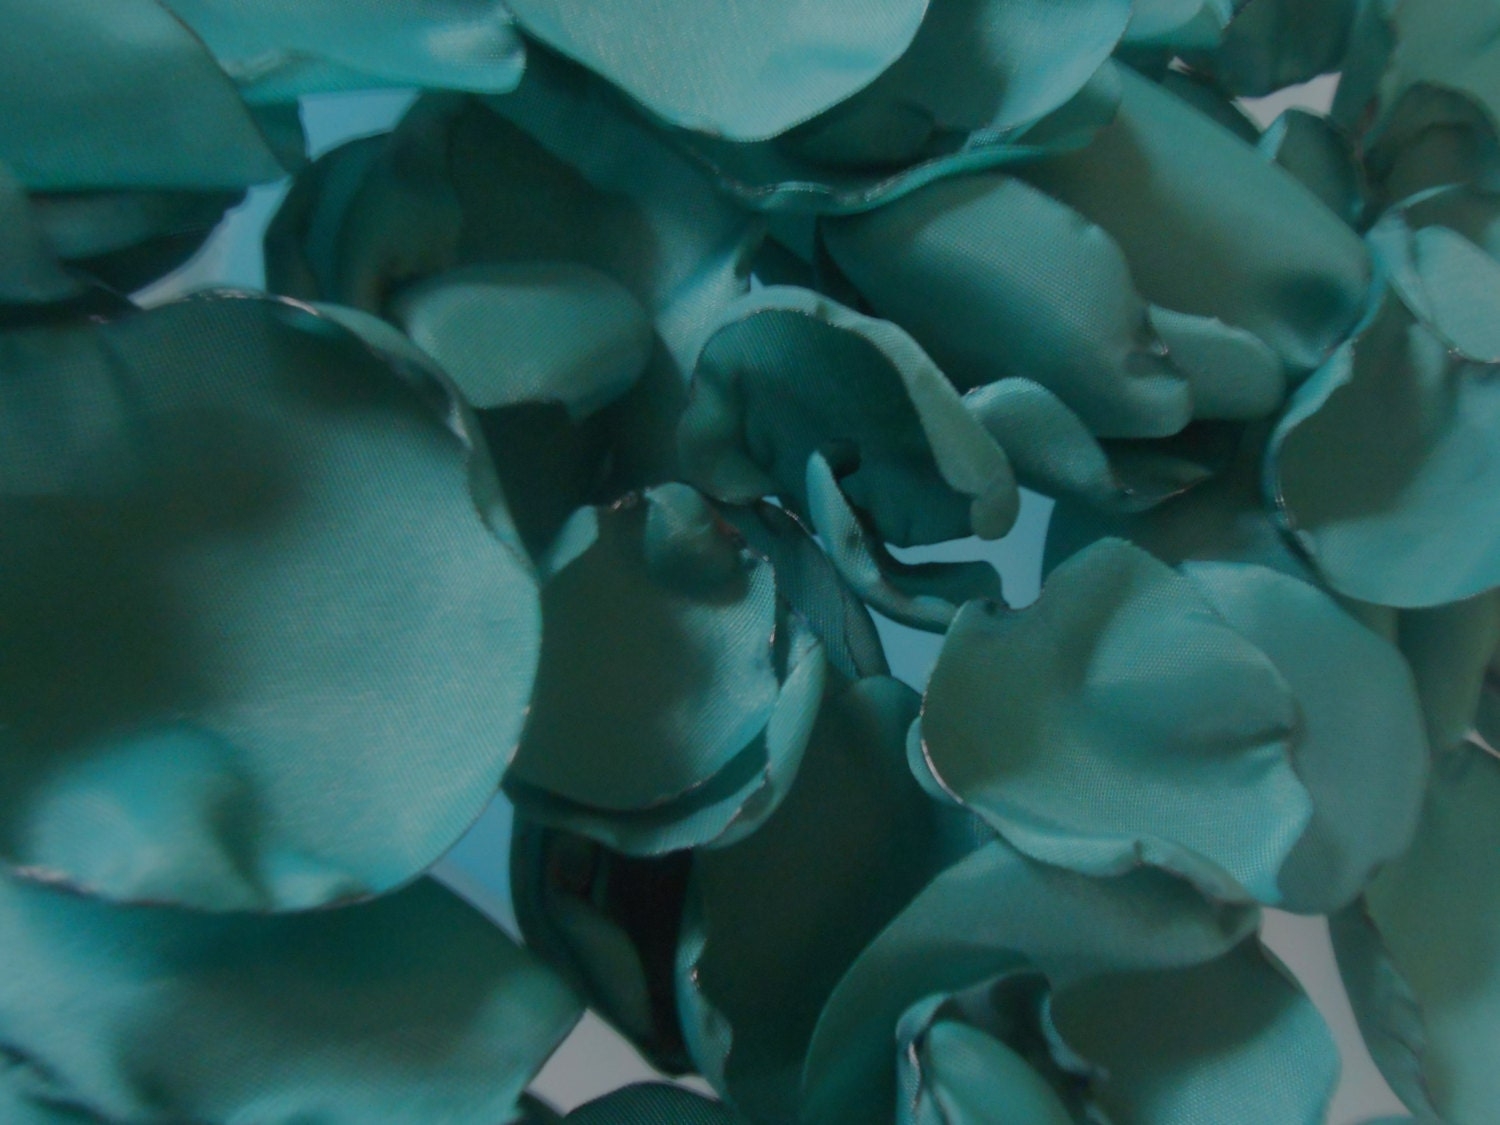 200 Dark Teal Wedding Fabric Flower Petals - mlmissal